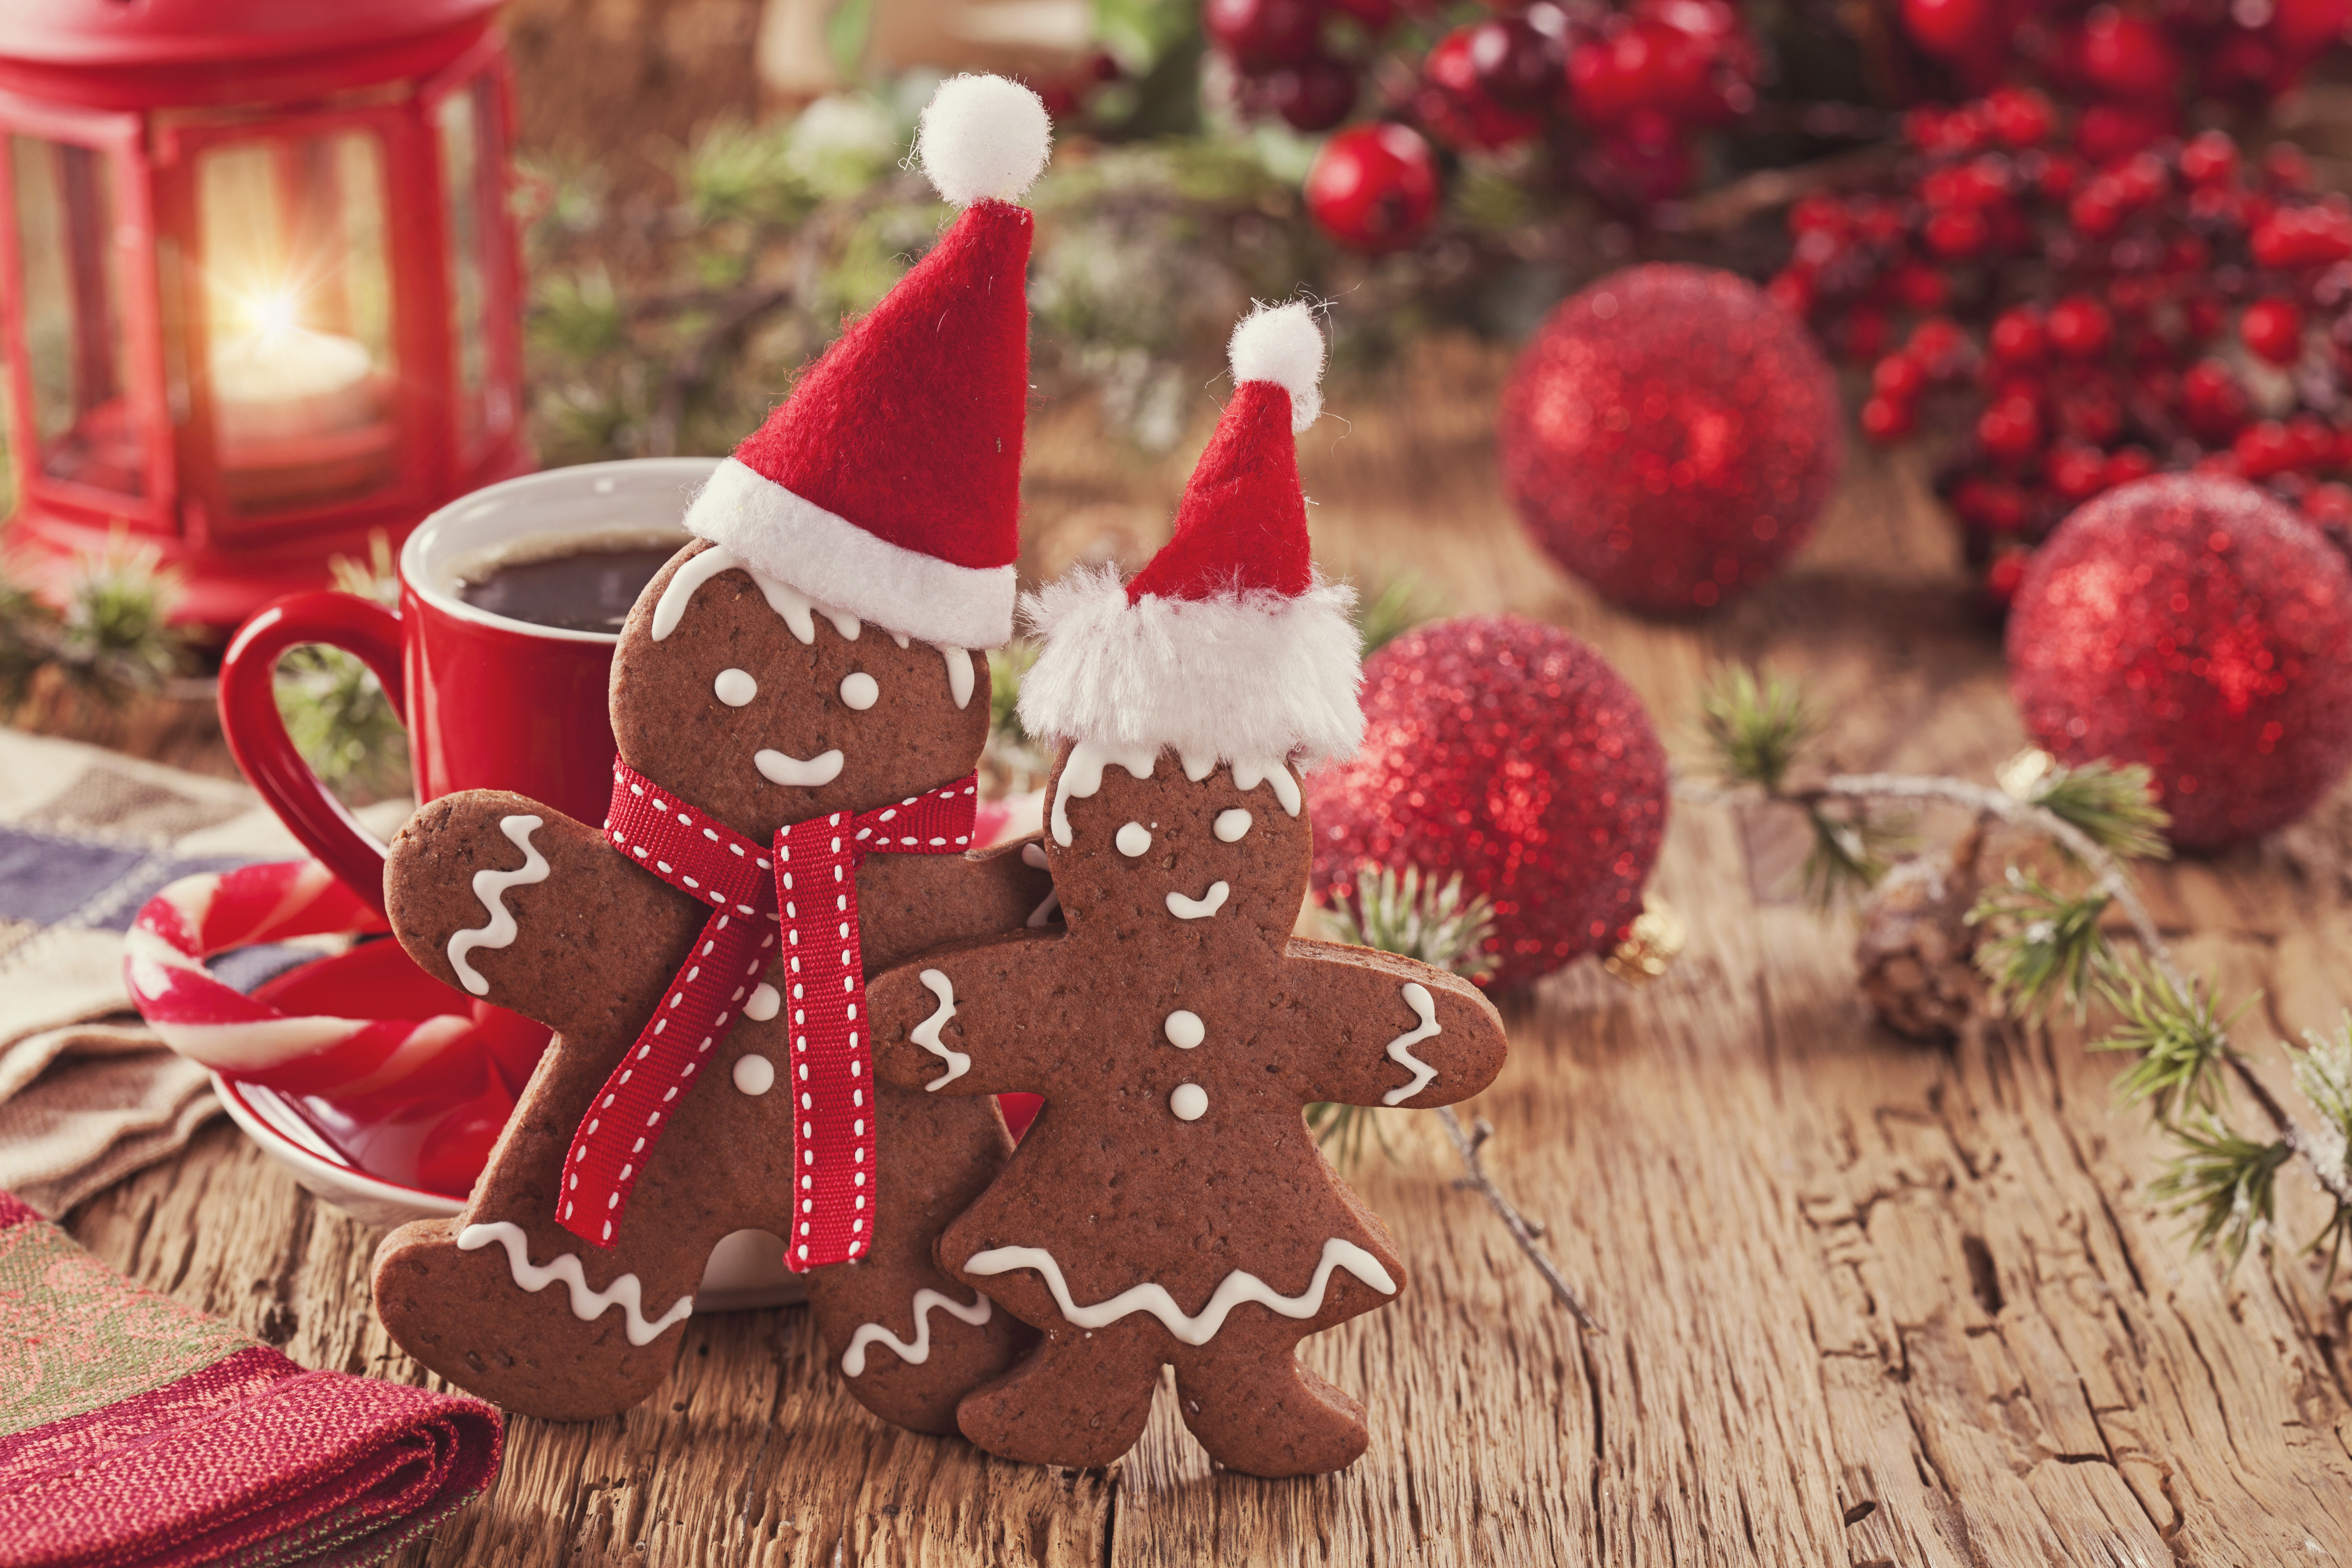 Download Christmas Food Wallpaper Gallery 5616x3744